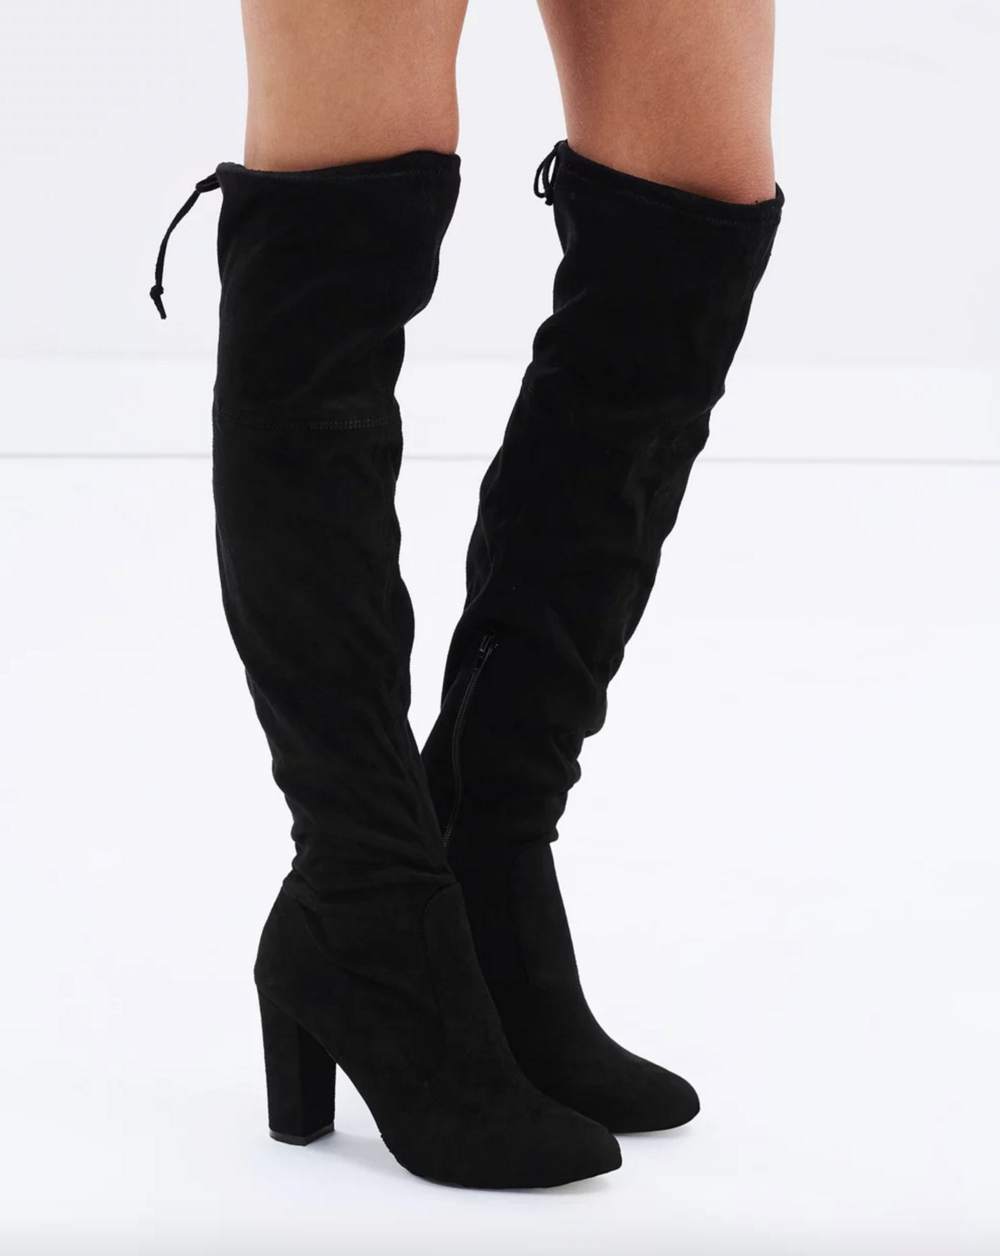 Spurr Kiley over the knee boots $89.95